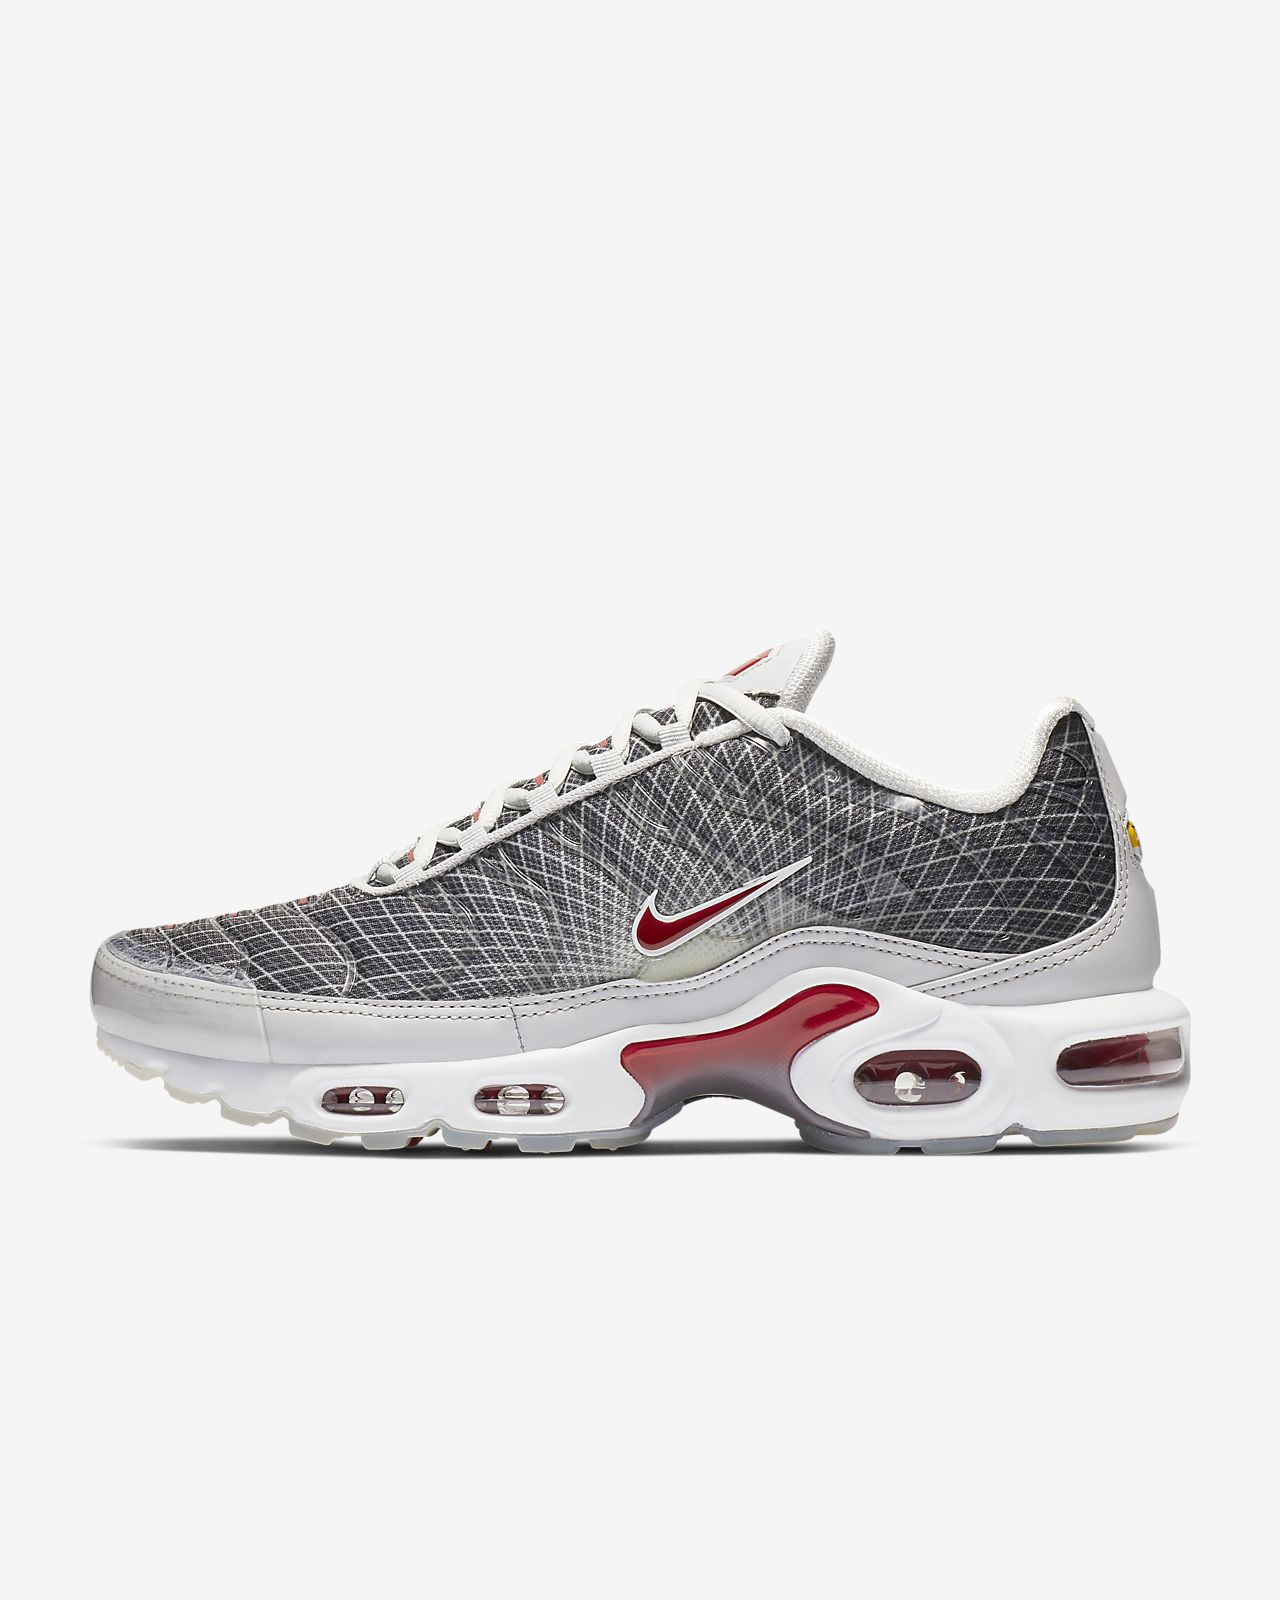 separation shoes 257f9 31433 Nike Air Max Plus OG Shoe. Nike.com